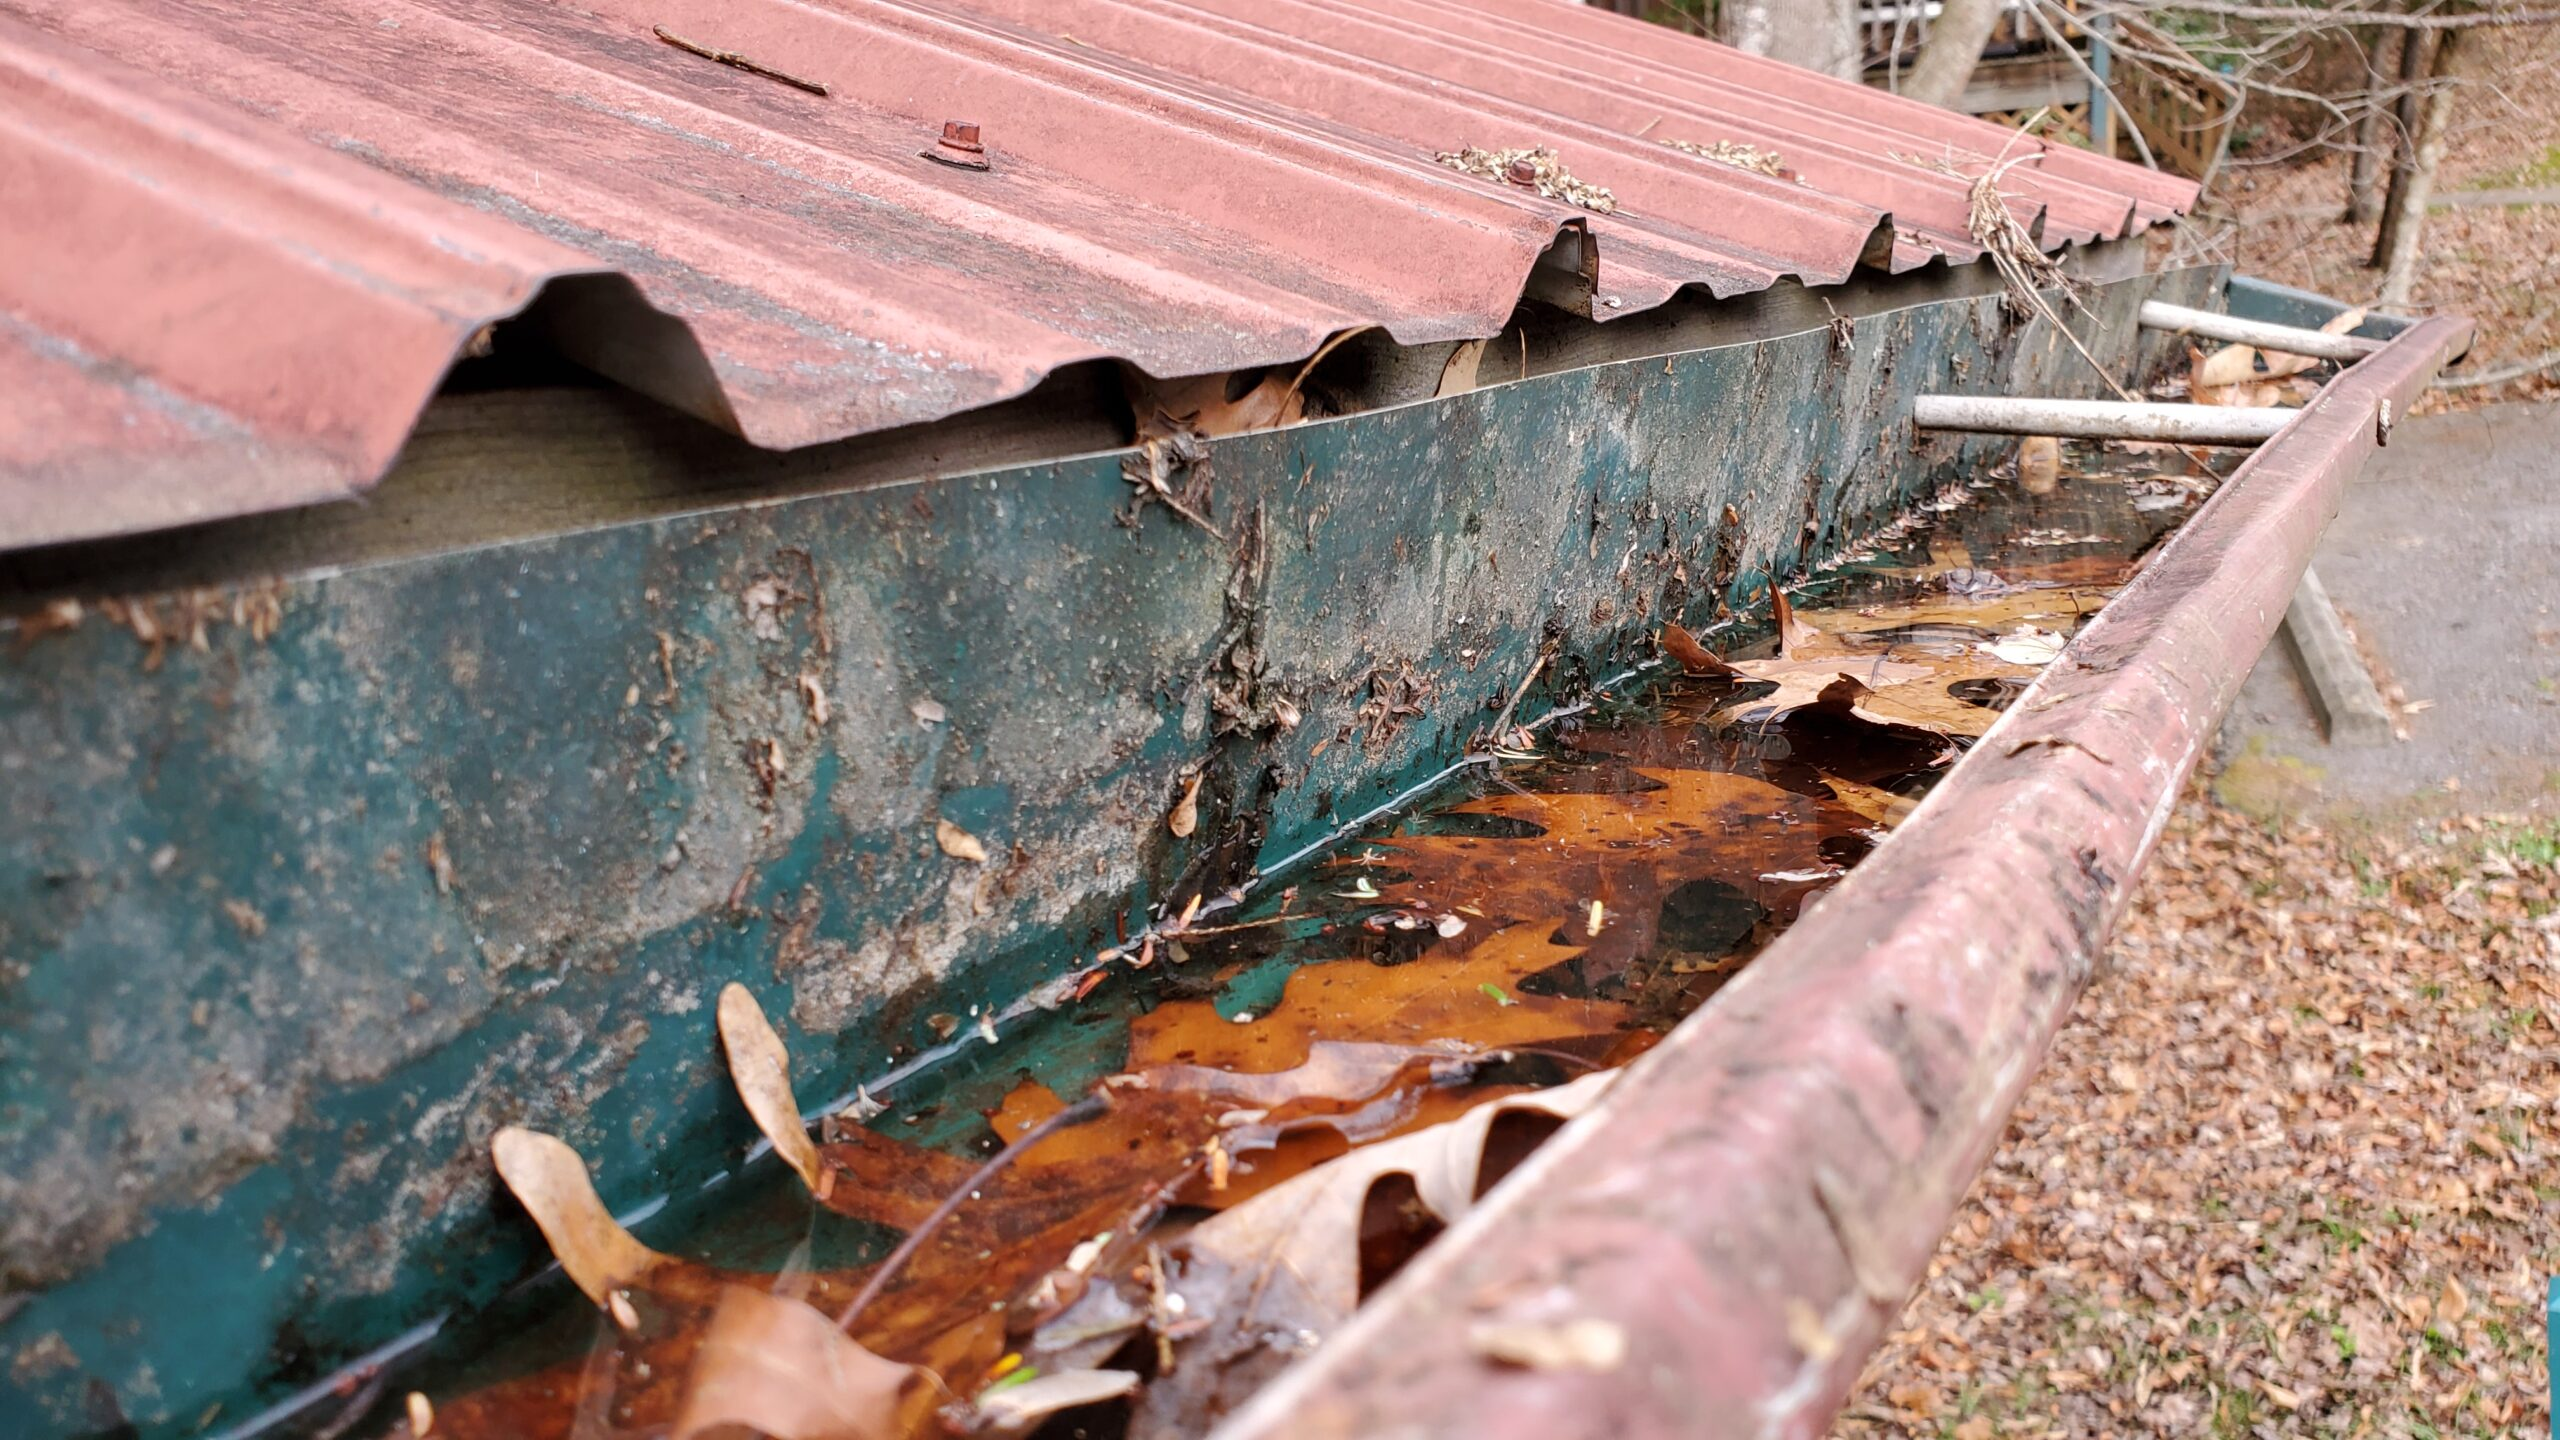 This is a picture of a old gutter thats full of leaves and water because is clogged